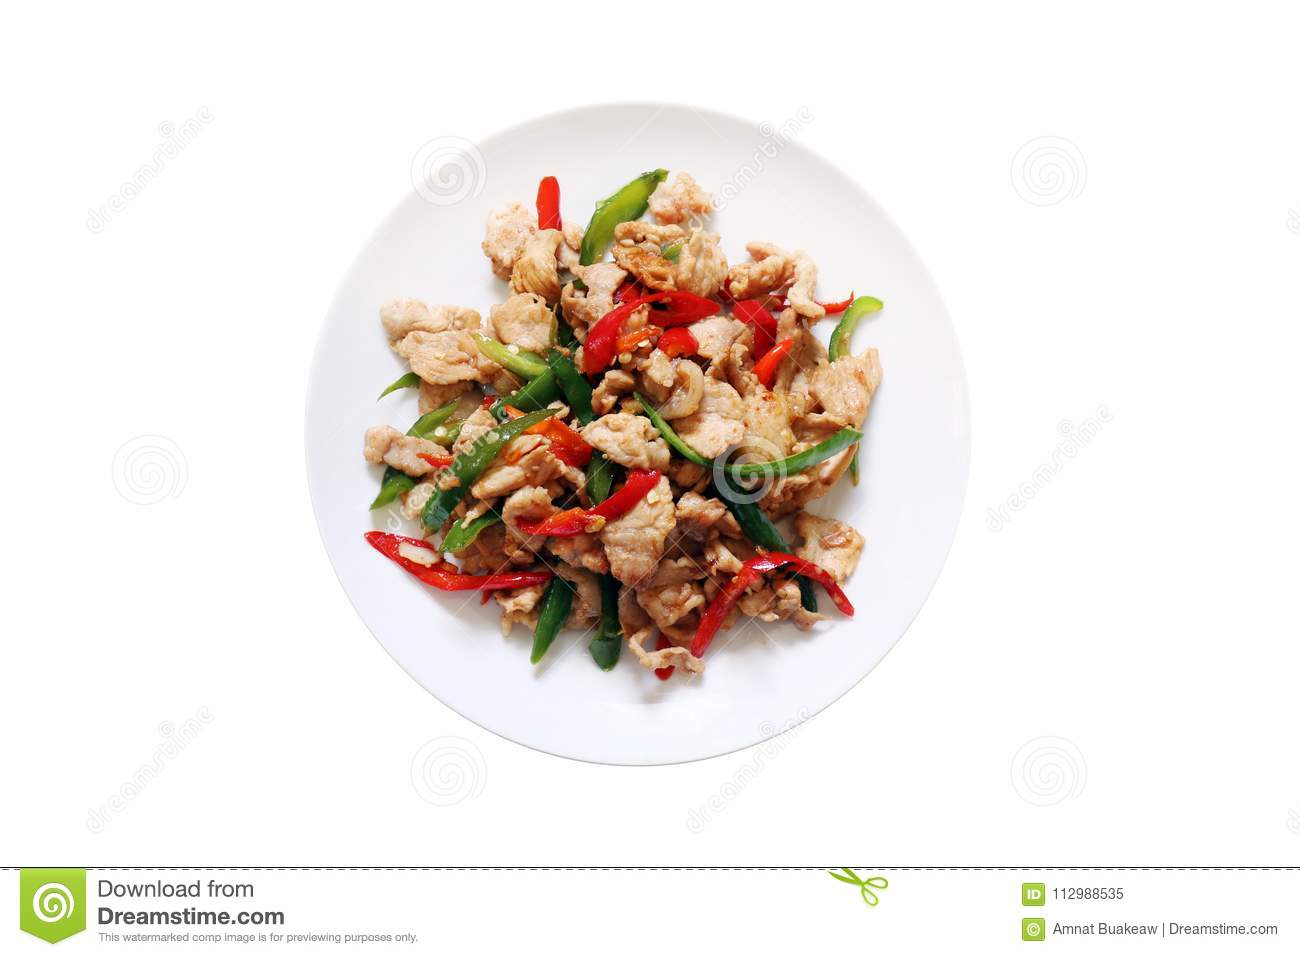 Spicy food, chili food, Fried sweet pepper with pork, Fried chili paste with pork, meat, Salted pork with chili cooking oil & Basi